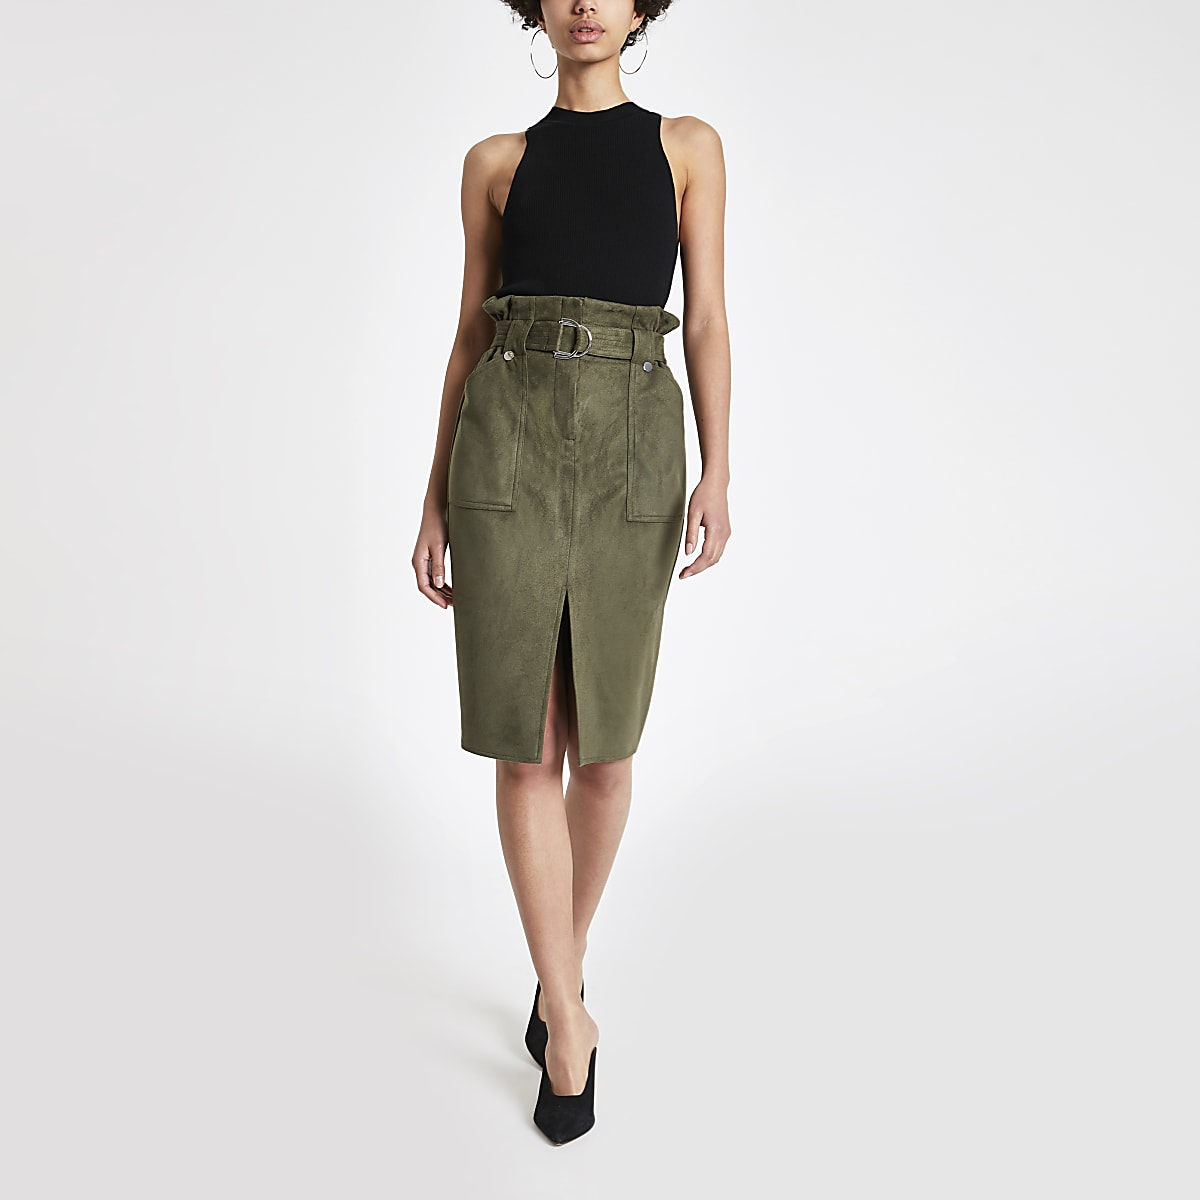 0053a73be Khaki faux suede paperbag pencil skirt - Midi Skirts - Skirts - women